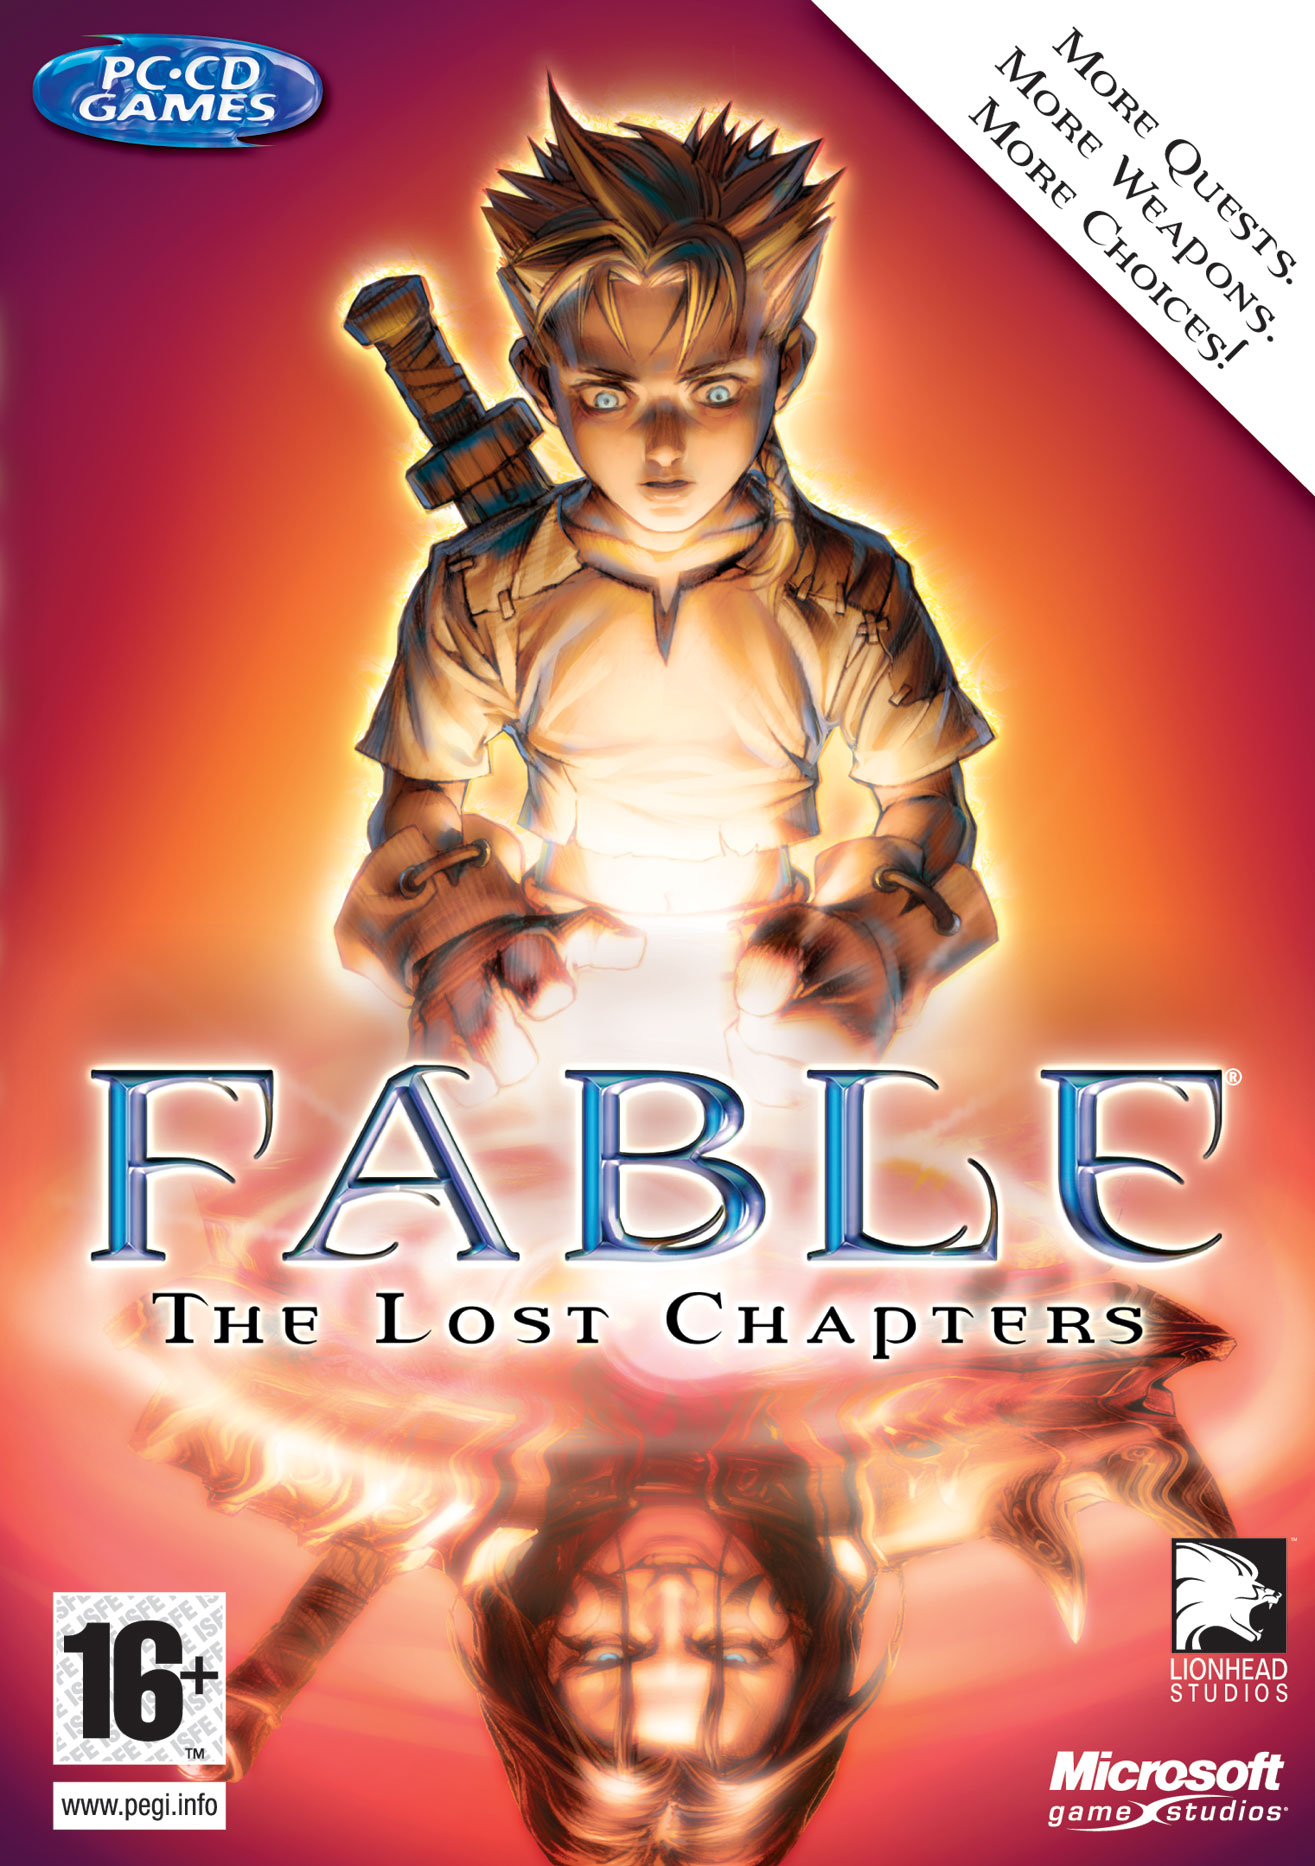 http://images.wikia.com/fable/images/e/eb/Fable_The_Lost_Chapters_Cover.jpg